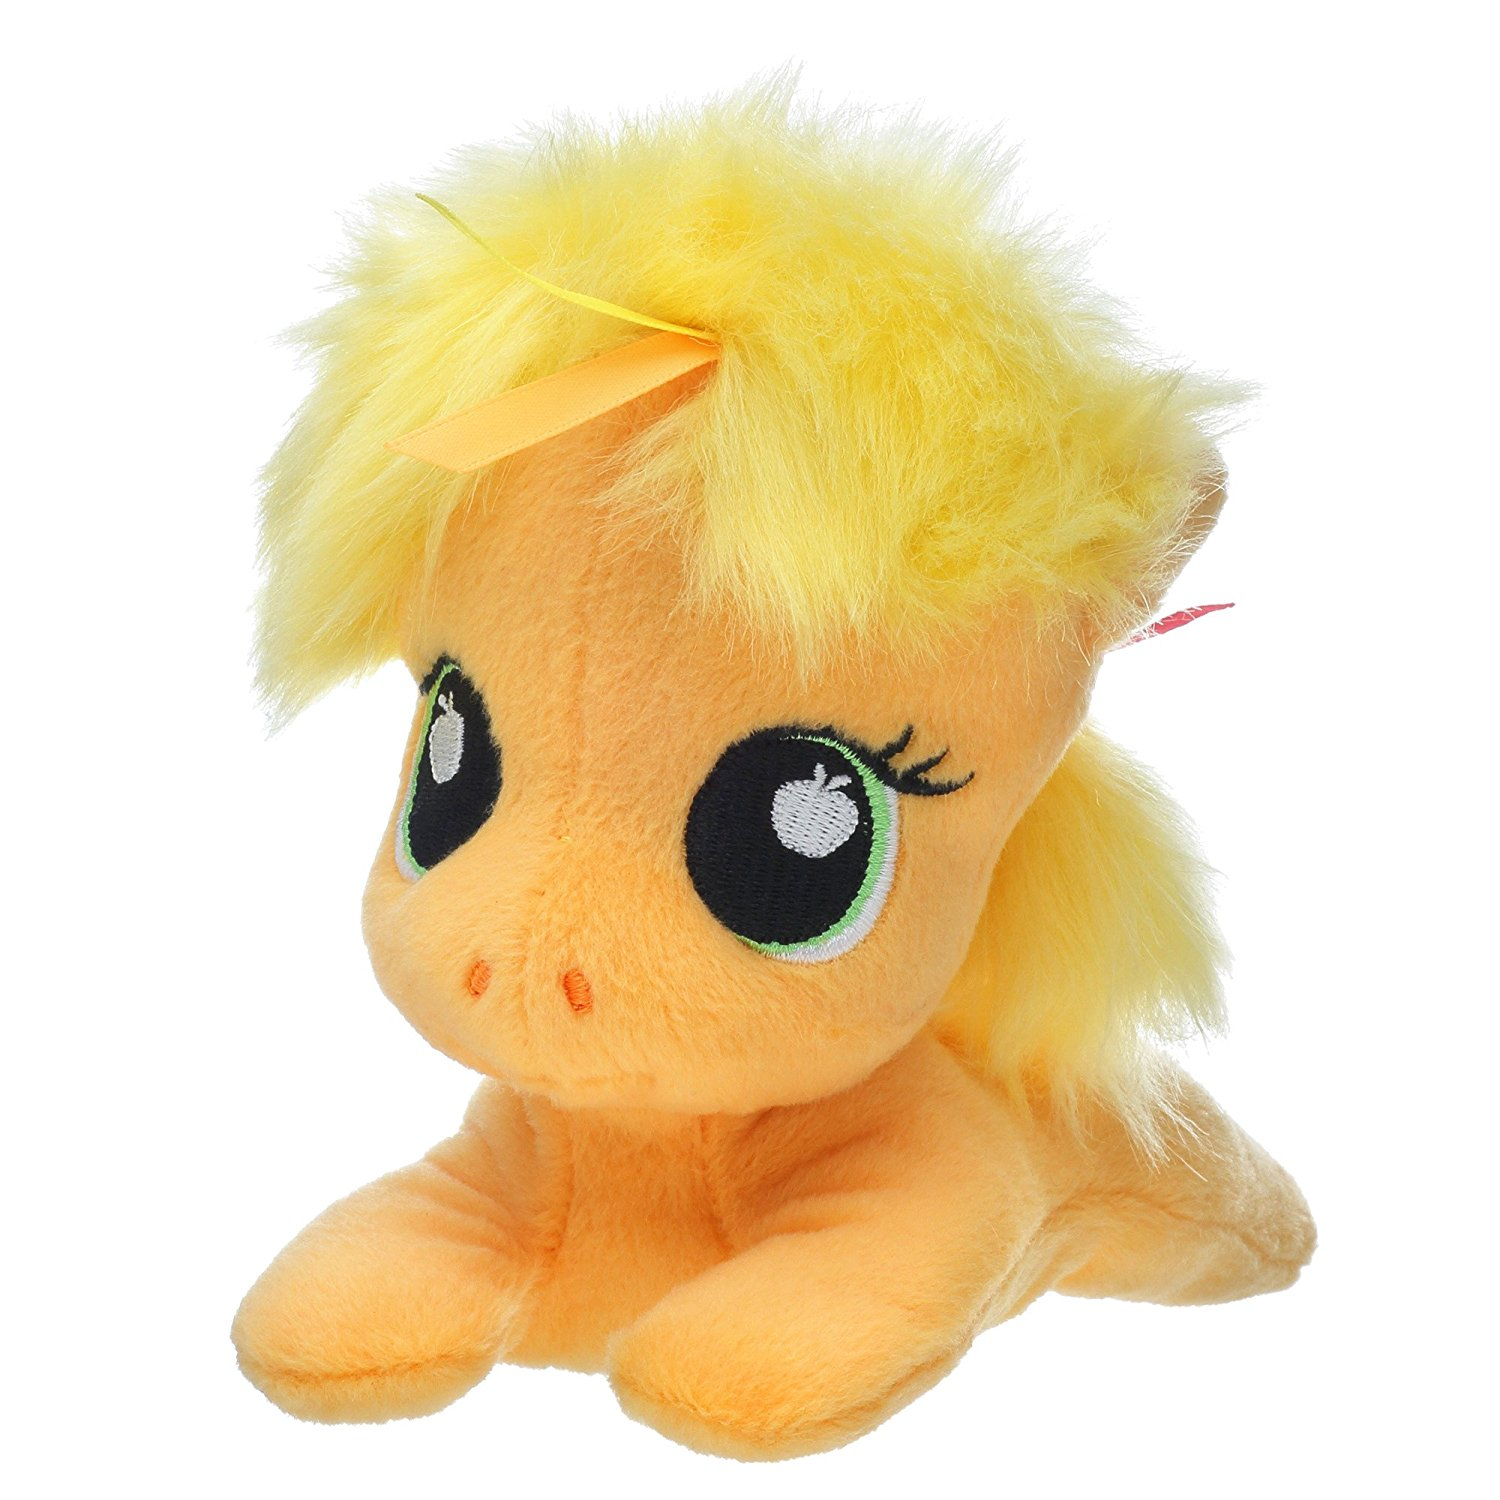 Friends My Little Pony Applejack 6-Inch Plush, A snuggly soft Applejack friend for little... by Playskool